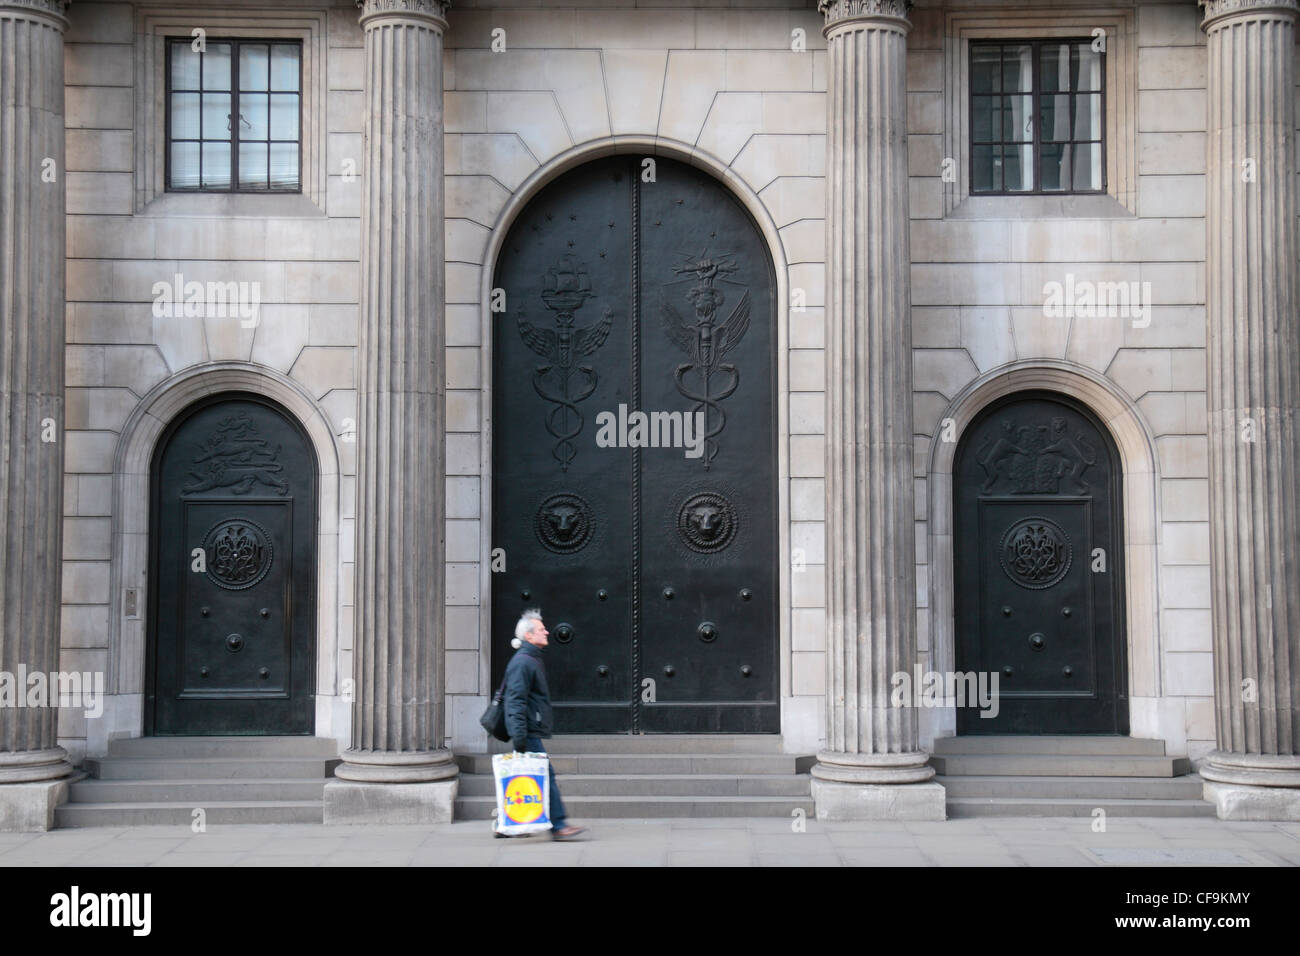 The closed entrance doors to the Bank of England in the City of Stock Photo 43853627 - Alamy & The closed entrance doors to the Bank of England in the City of ...